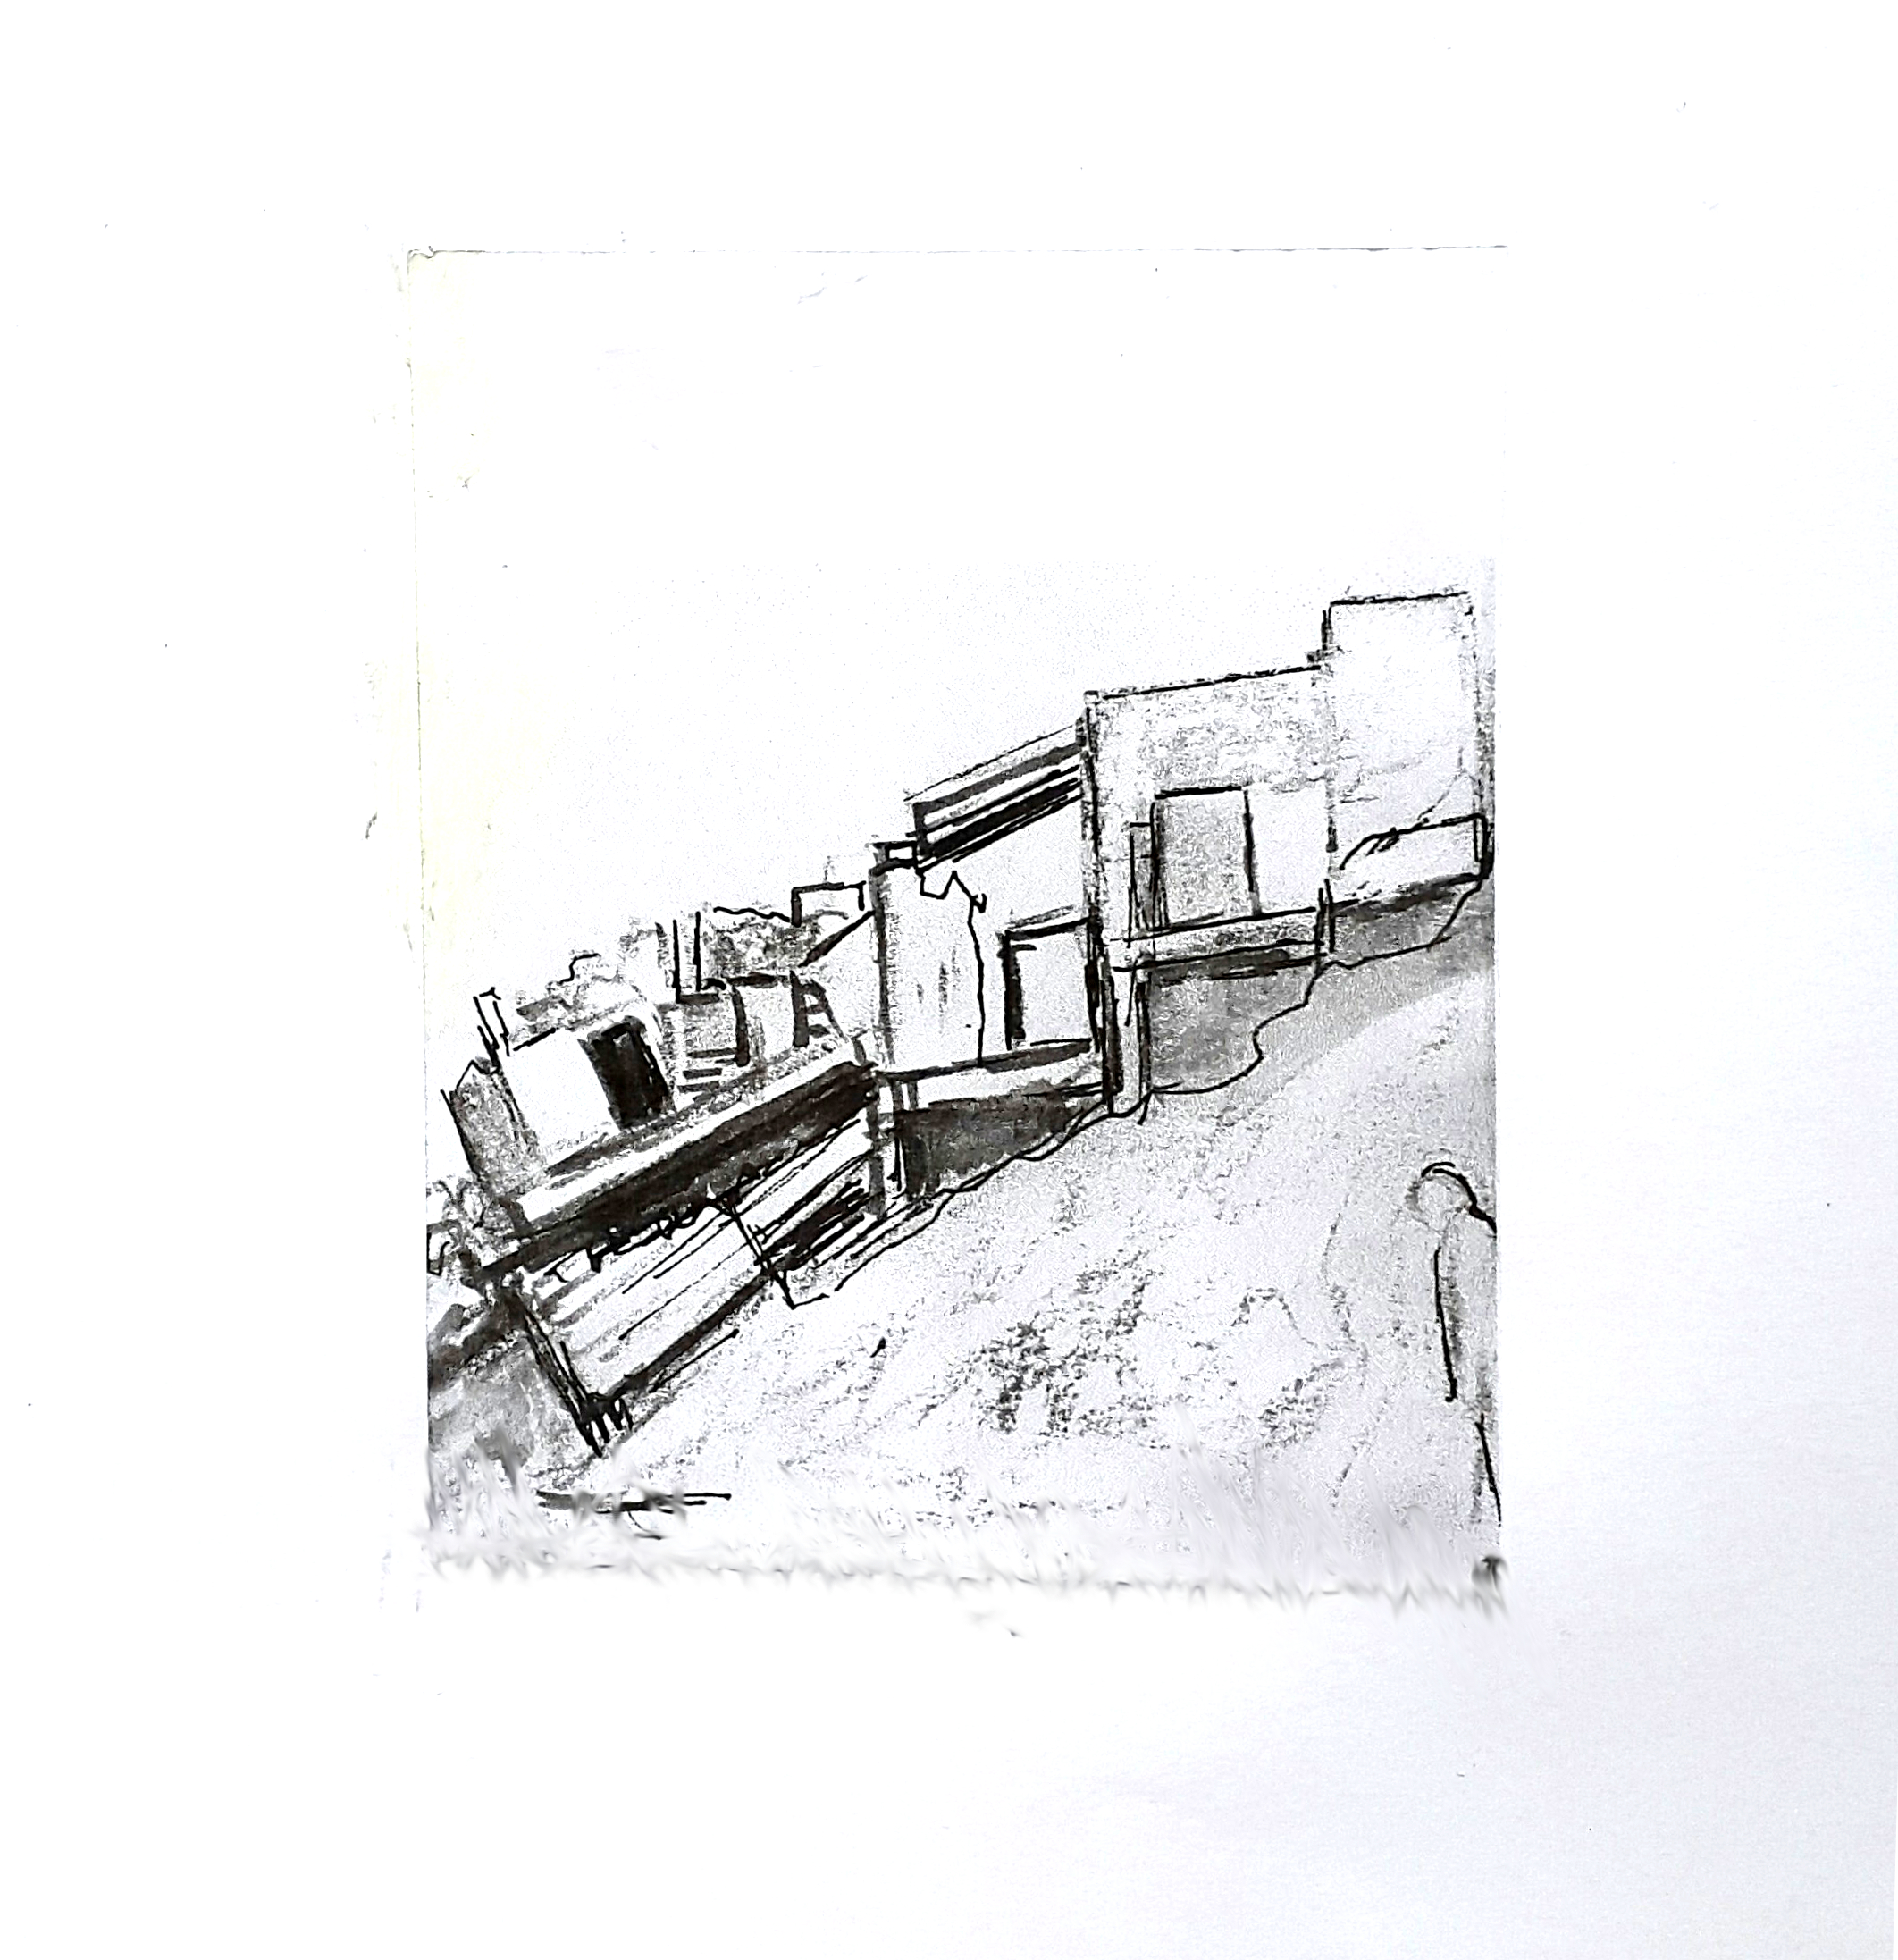 55 Aftermath 5, 10 x 12 cm, ink and charcoal on paper